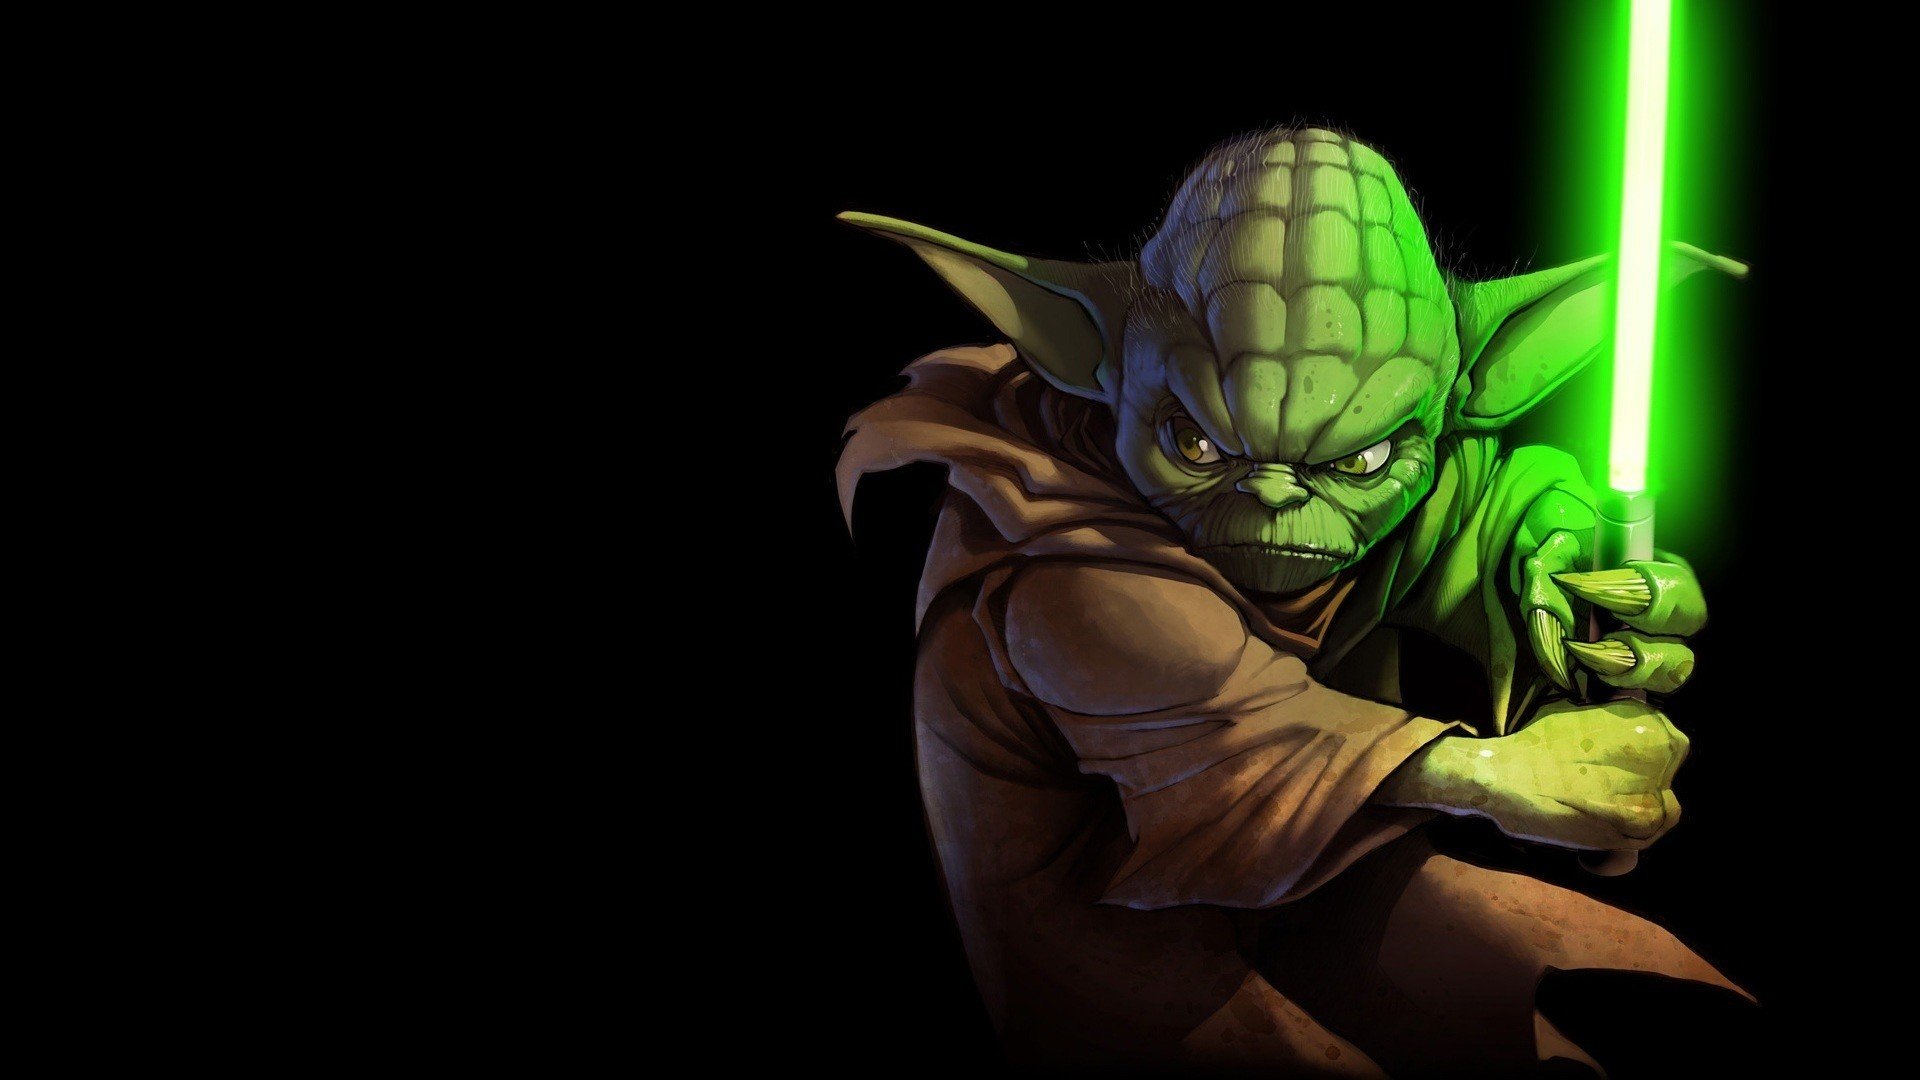 1920x1080 Star Wars Yoda Wallpaper